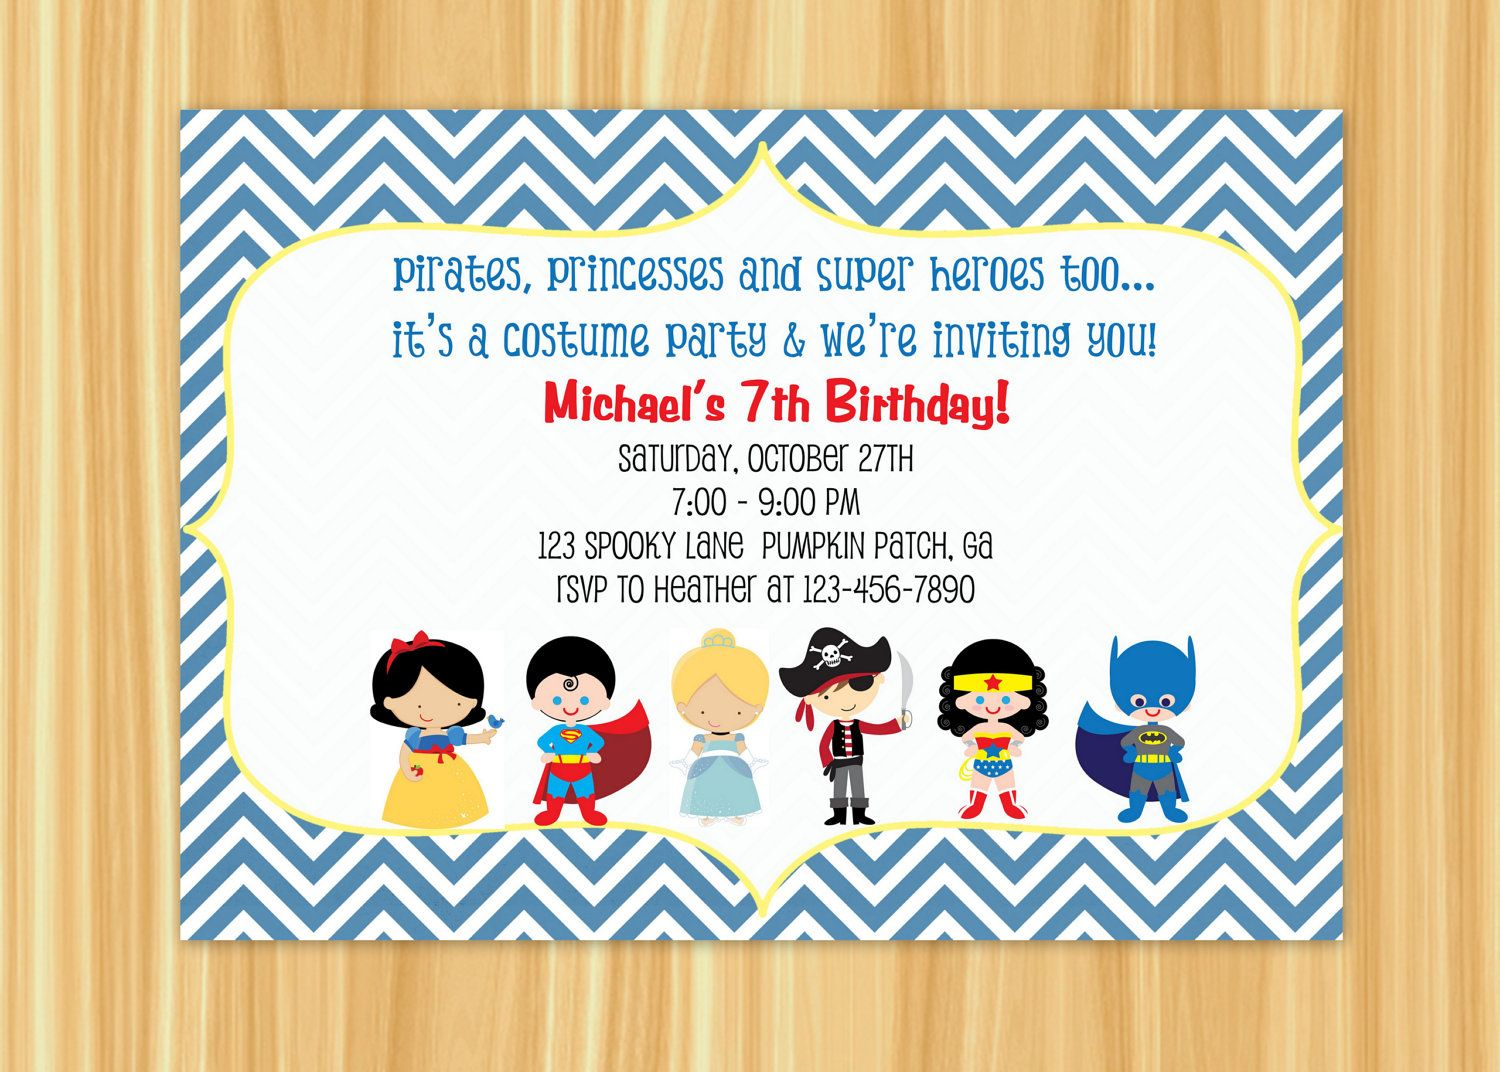 Custom Printable Kids Costume Party Birthday Invitation. $10.00 ...